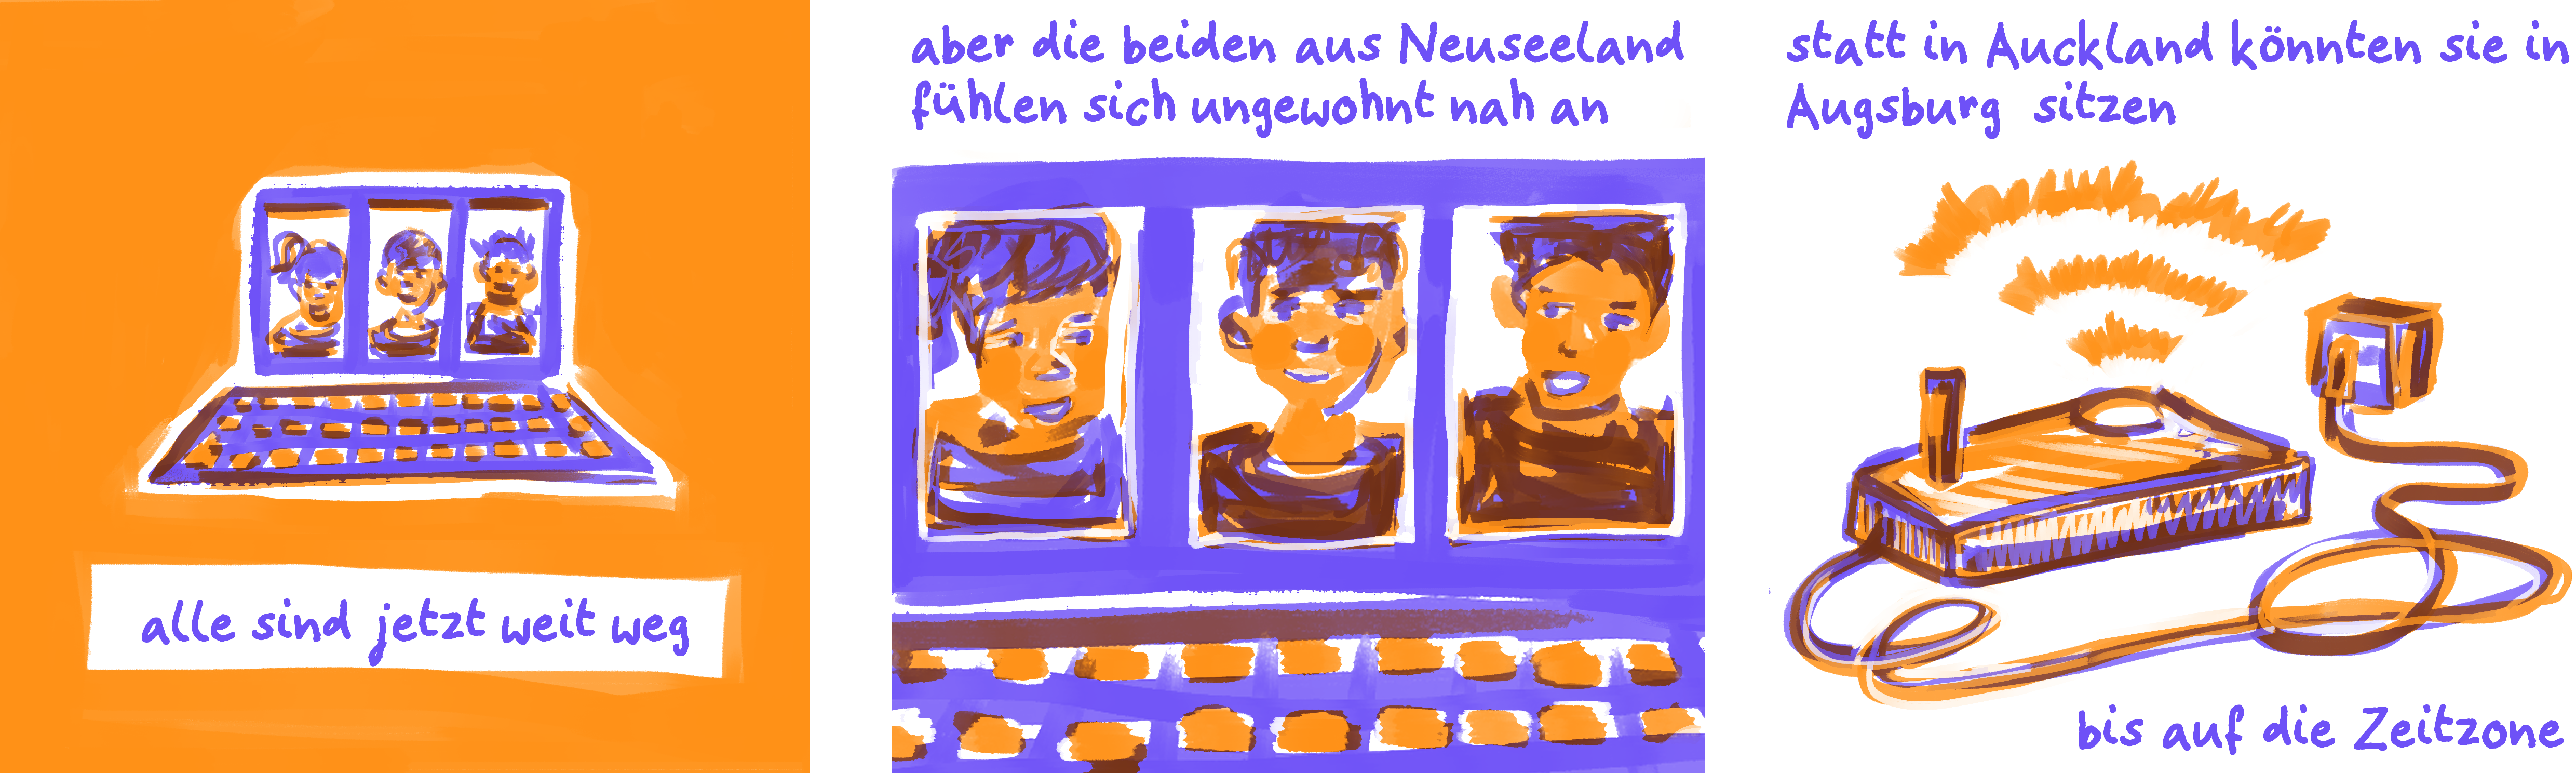 Extract of a blue and organe comic